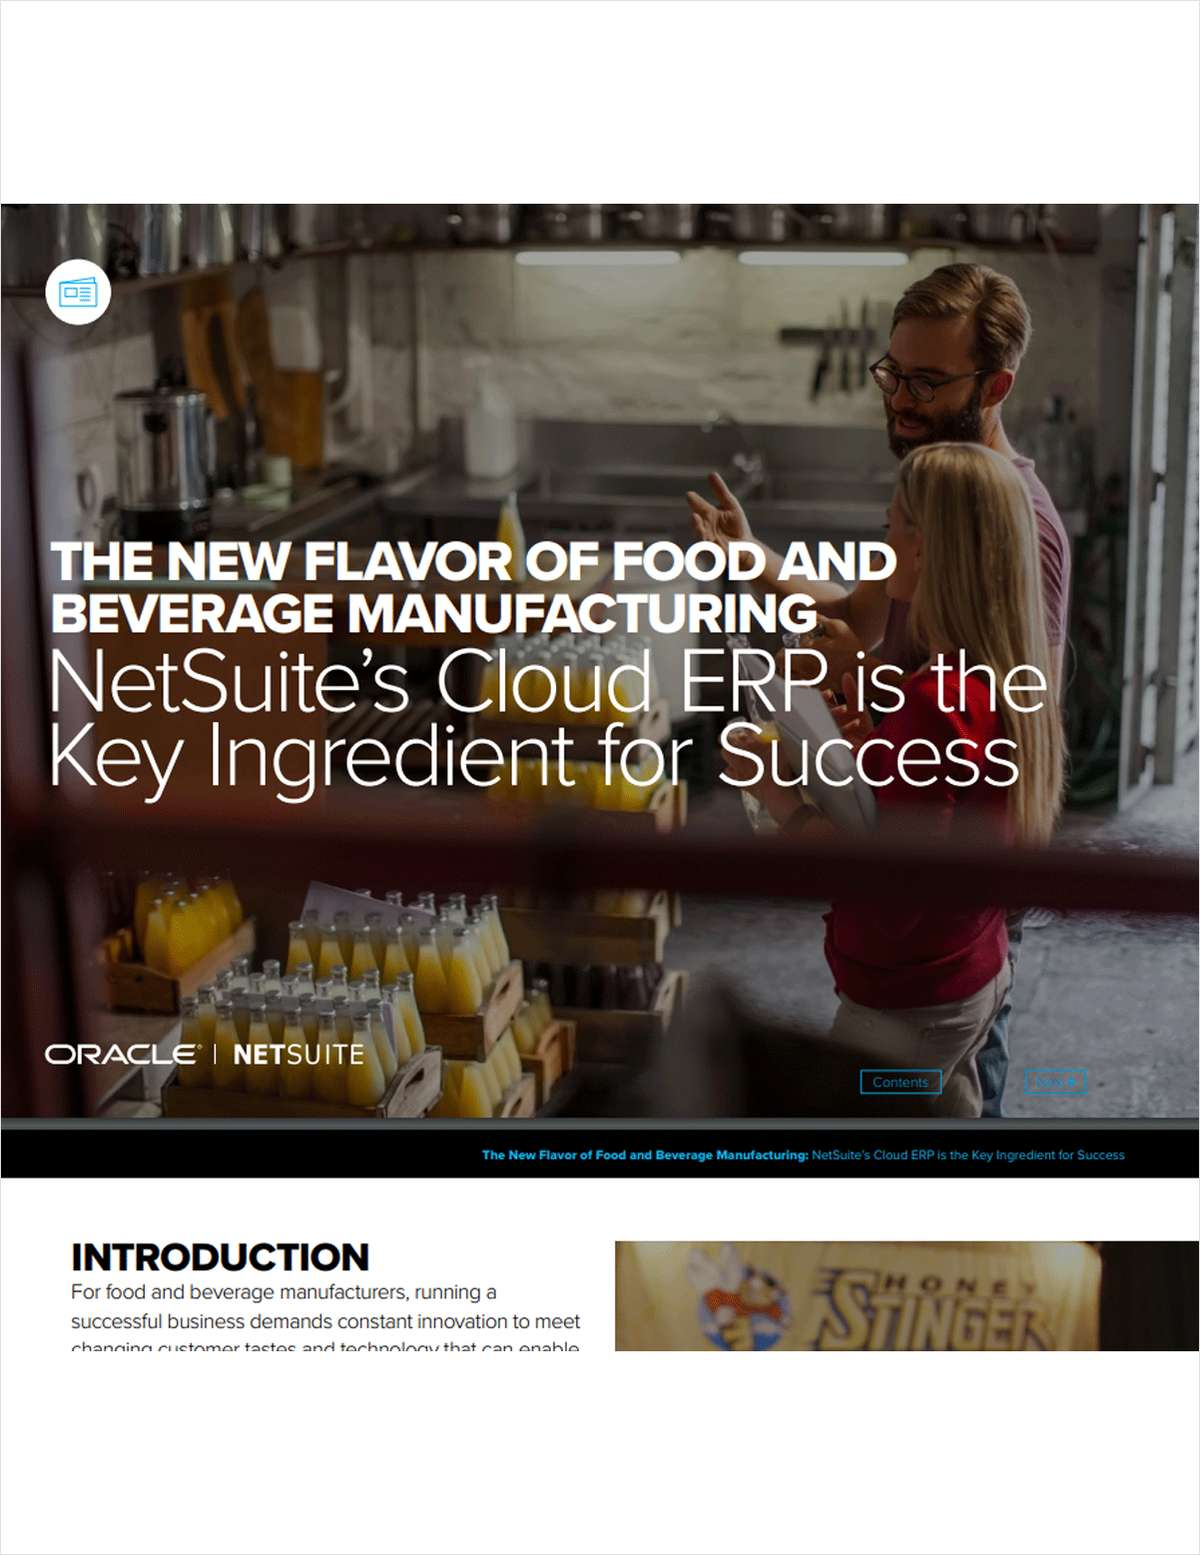 The New Flavor of Food and Beverage Manufacturing: NetSuite's Cloud ERP is the Key Ingredient for Success